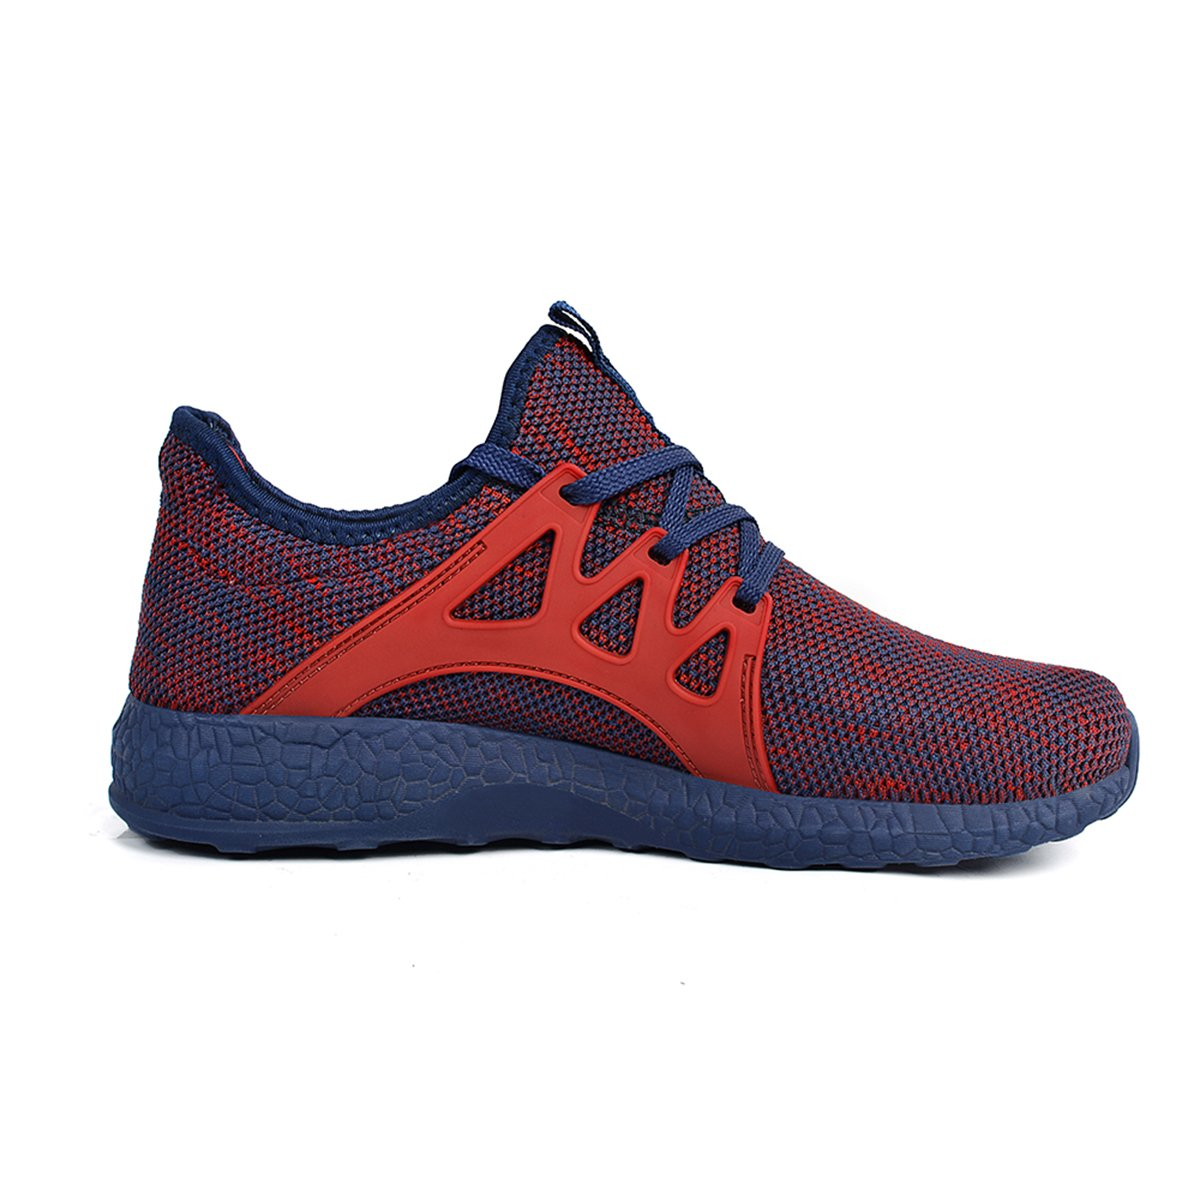 Feetmat Womens Sneakers Ultra Lightweight Breathable Mesh Walking Gym Tennis Athletic Running Shoes B077RVJKQ7 13 M US|Red/Blue